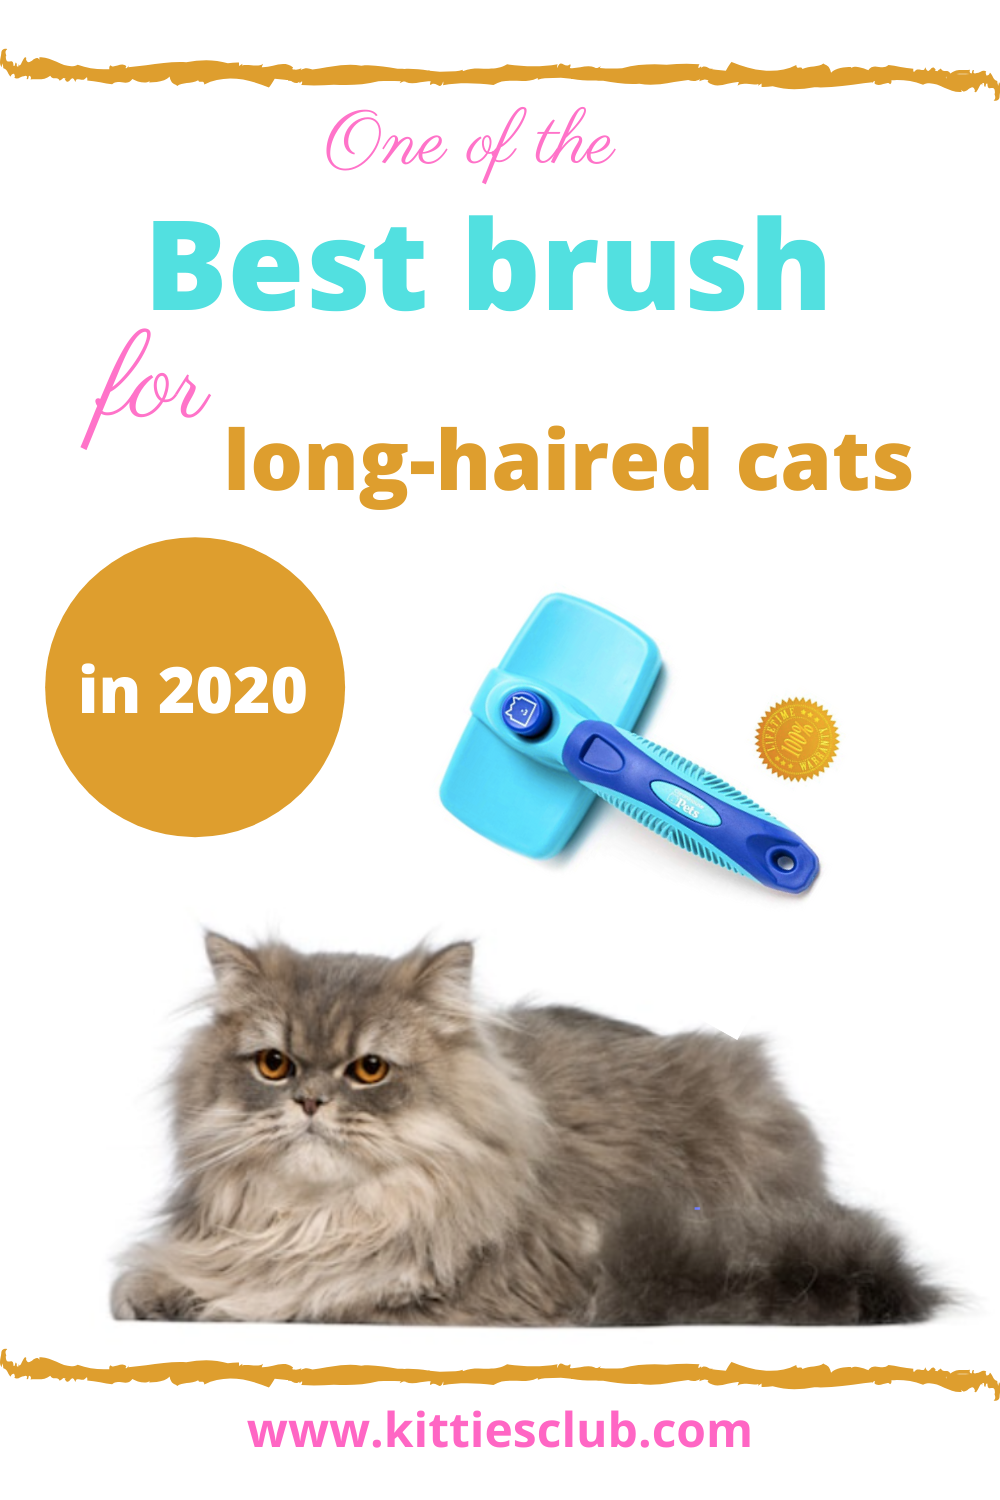 What Is The Best Brush For Long Haired Cats In 2020 In 2020 Long Haired Cats Cat Grooming Styles Cat Grooming